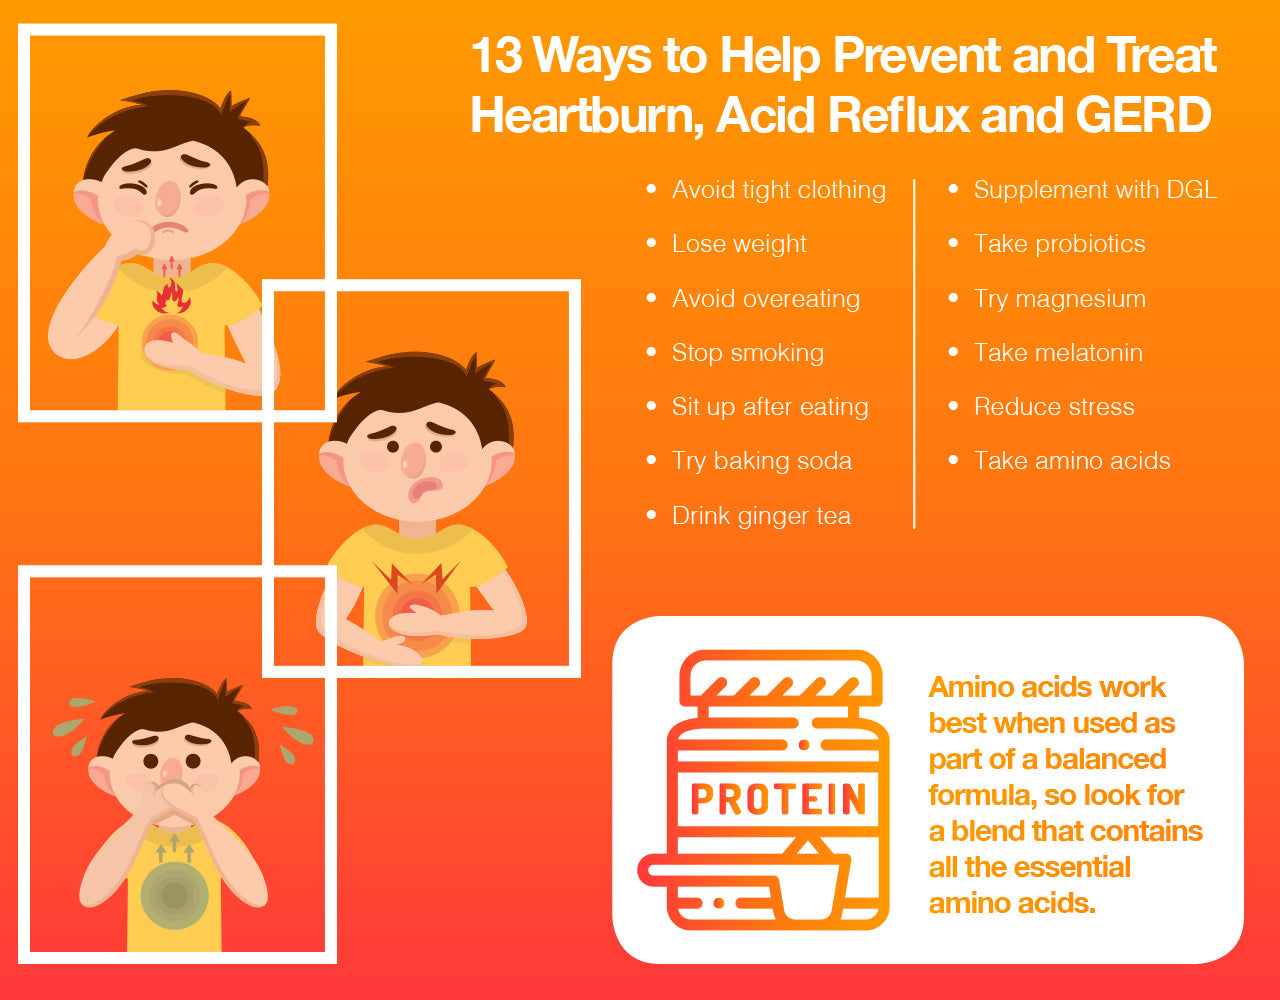 Prevent and treat heartburn, acid reflux and GERD